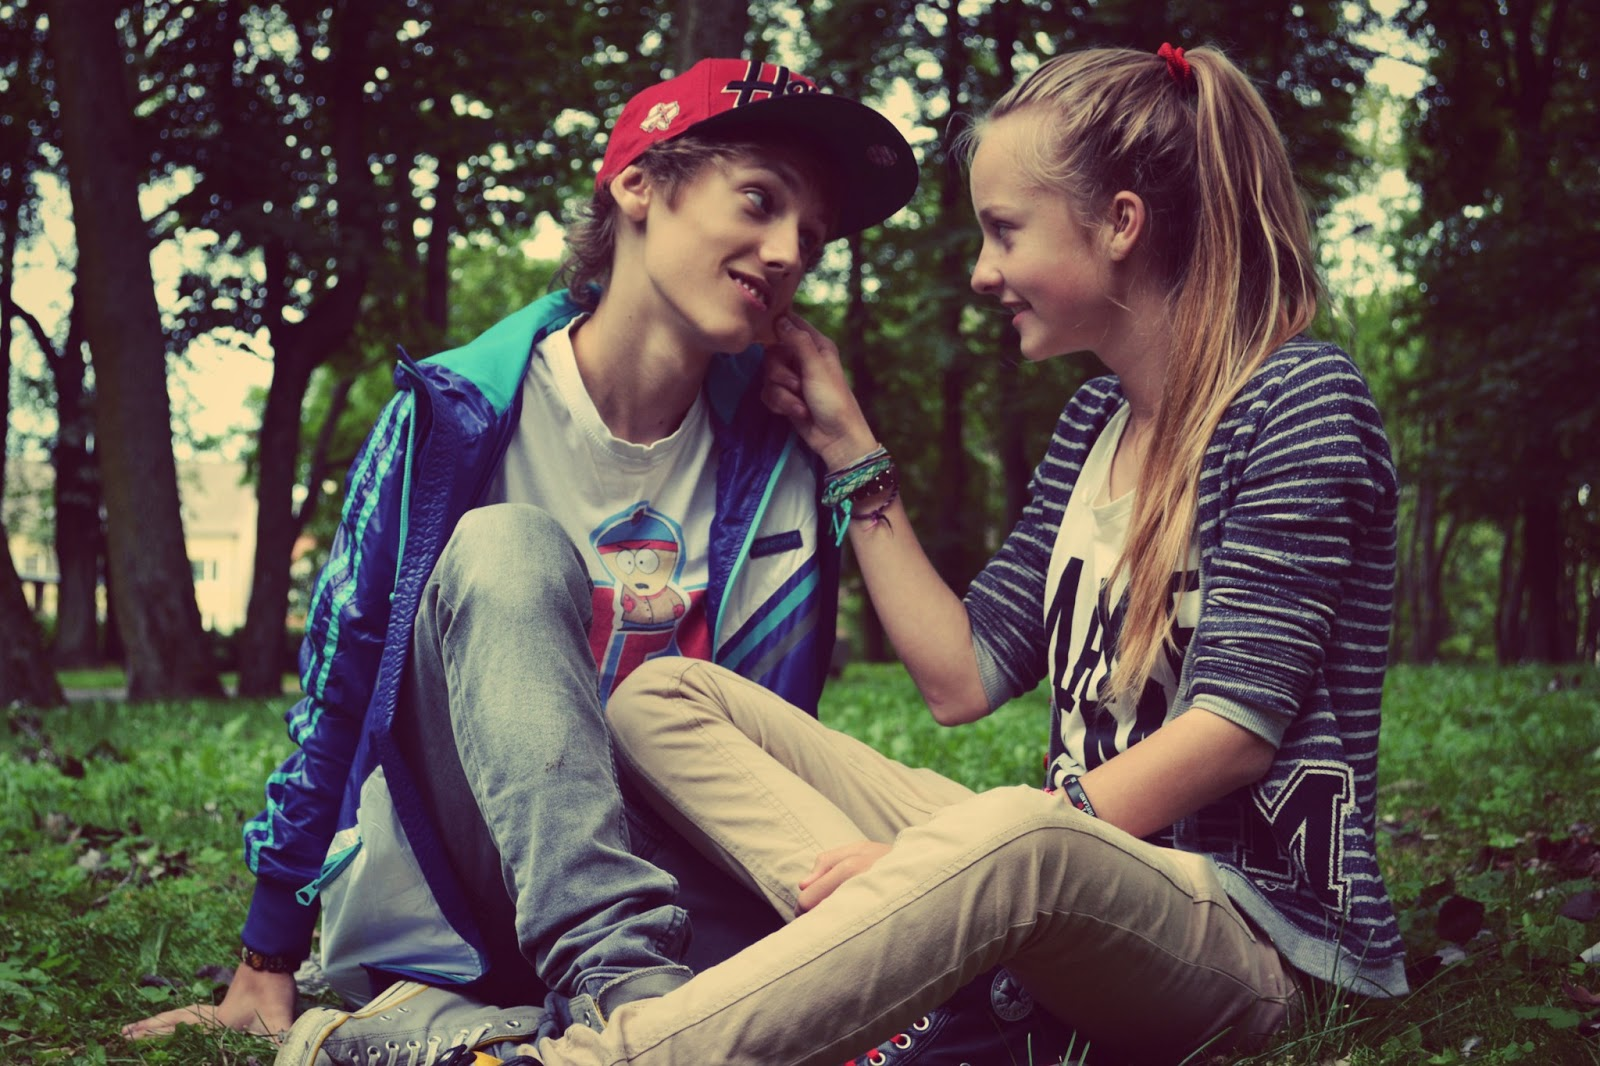 Wallpapers : Download love couple Wallpaper free ...